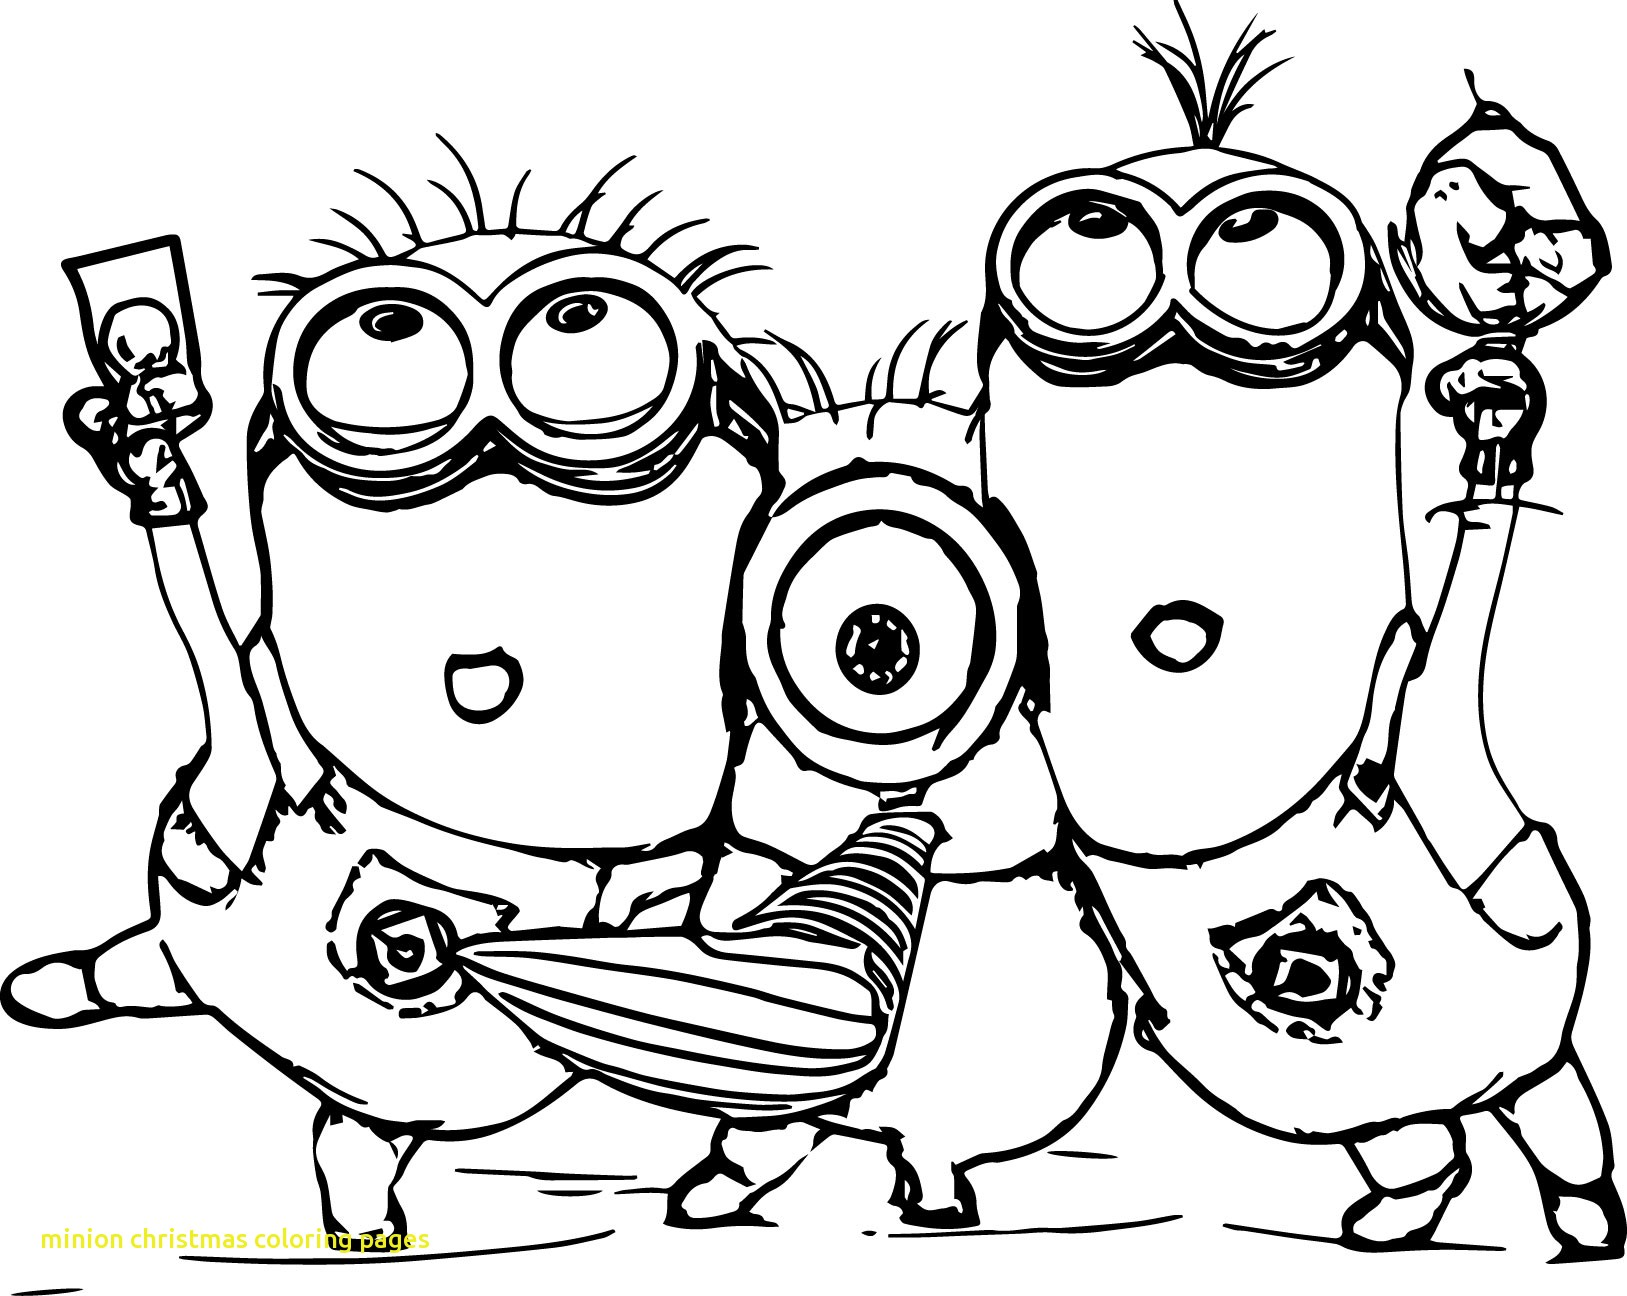 1627x1296 Minion Christmas Coloring Pages With Minion Christmas Coloring